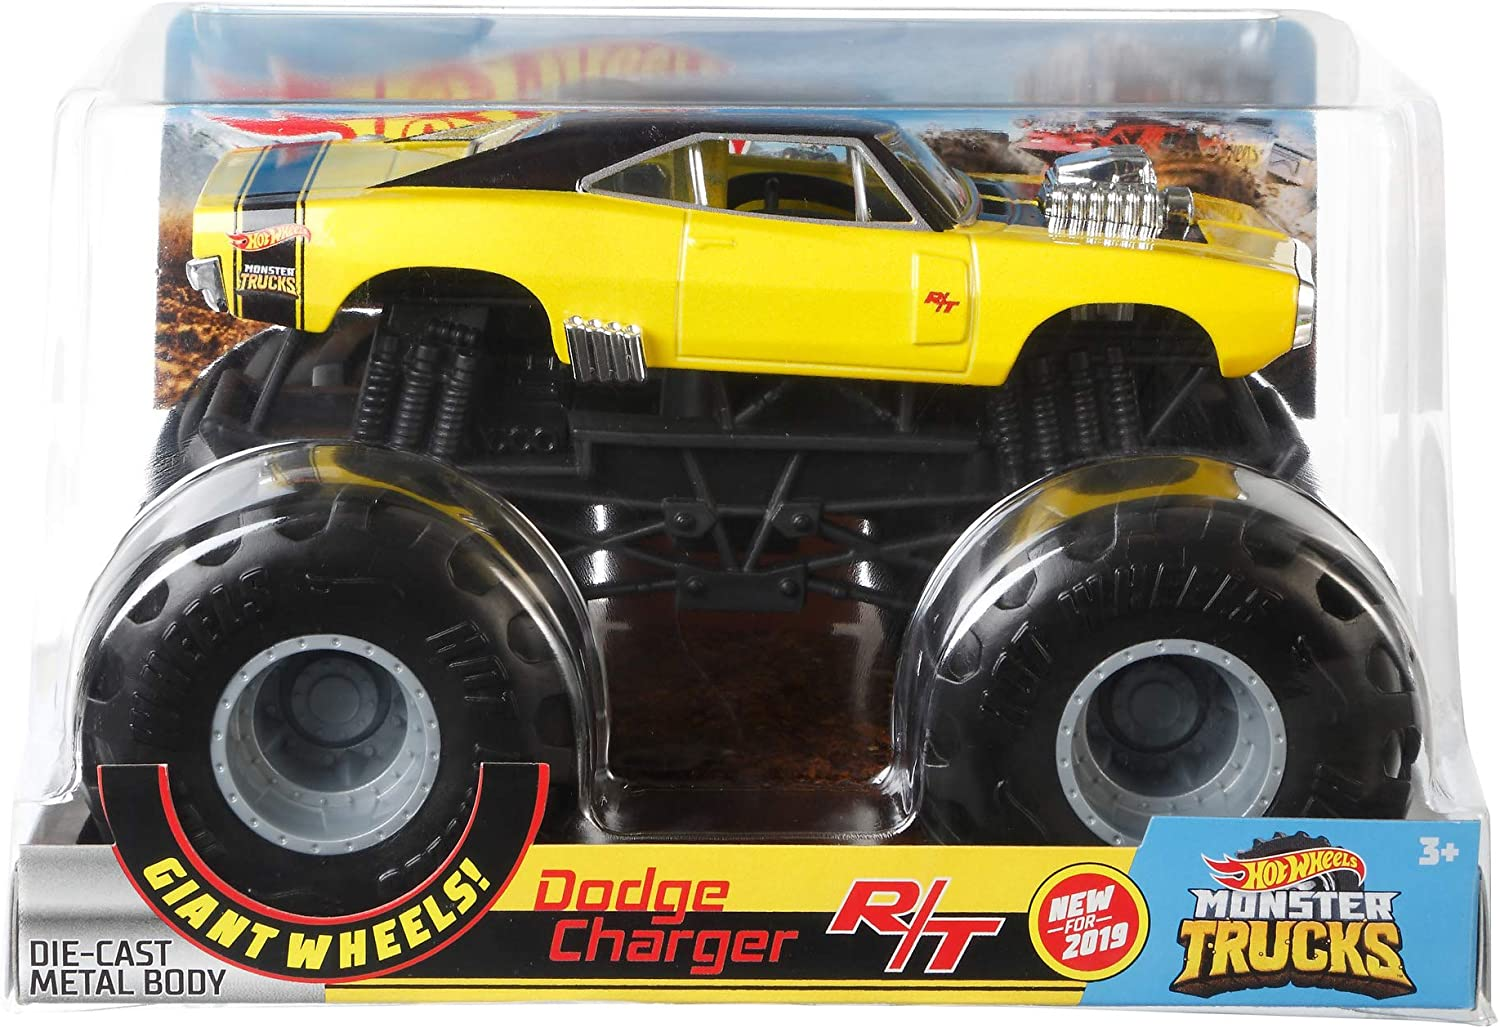 Amazon Com Hot Wheels Monster Trucks Dodge Charger R T Die Cast 1 24 Scale Vehicle With Giant Wheels For Kids Age 3 To 8 Years Old Great Gift Toy Trucks Large Scales Toys Games